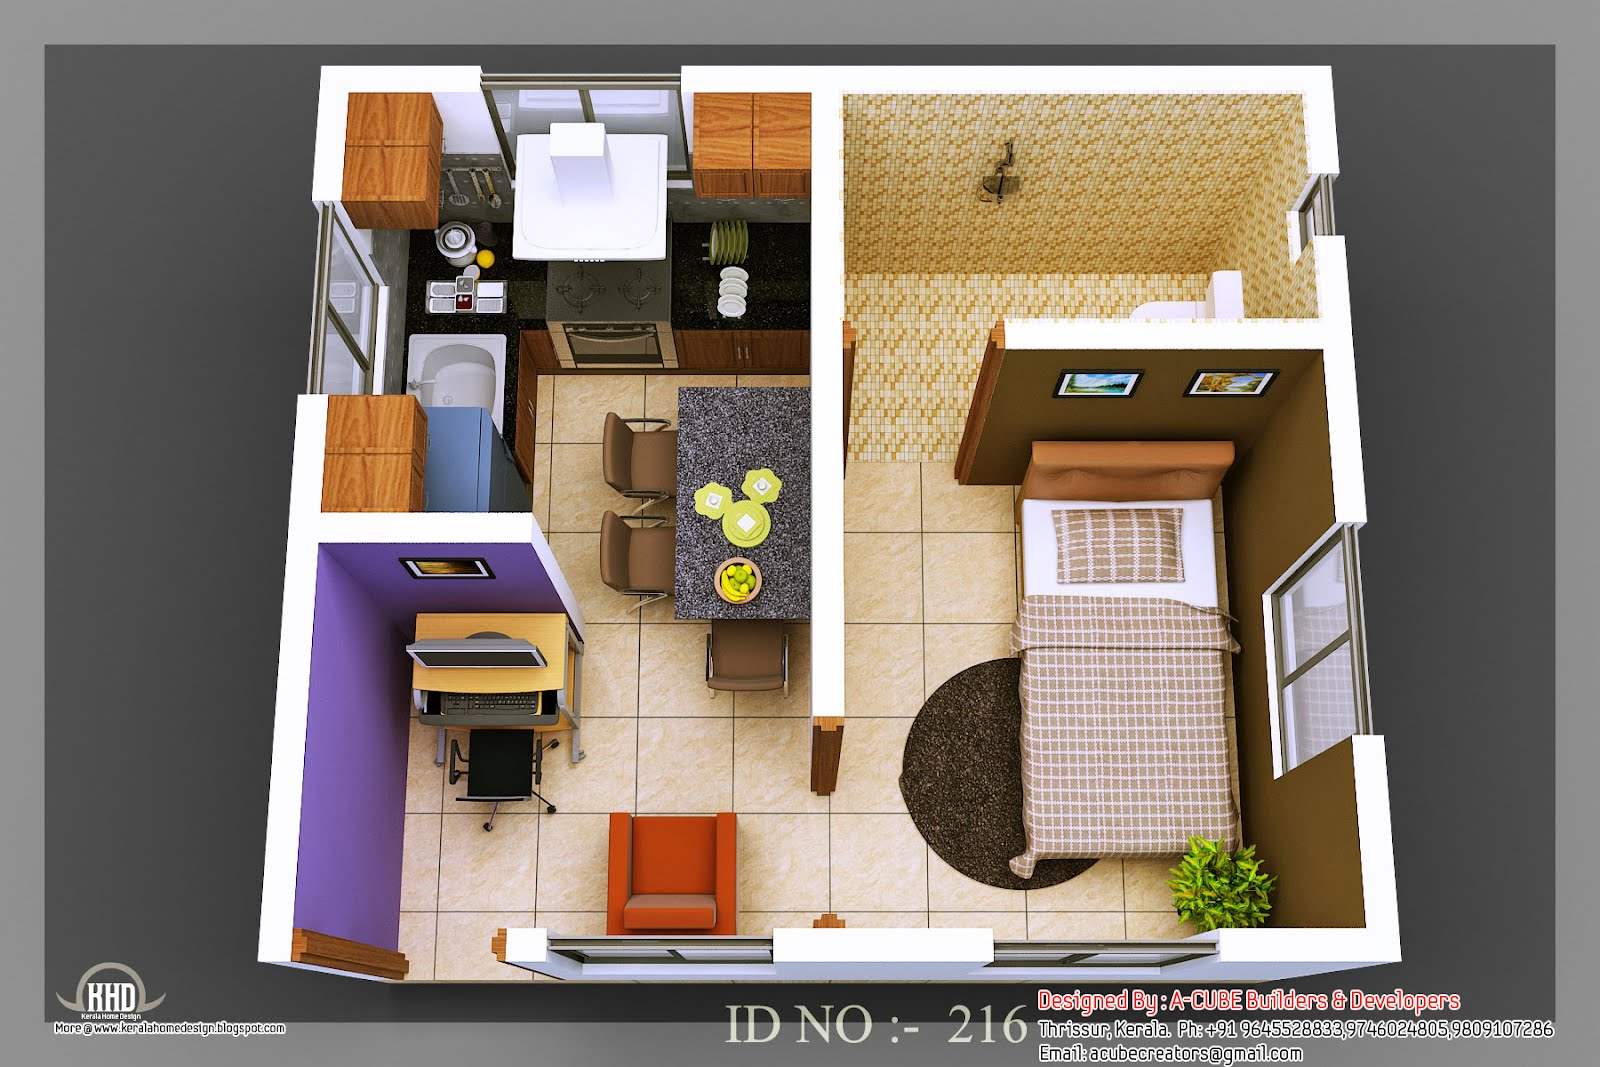 3d isometric views of small house plans home appliance for Small house plan design 3d